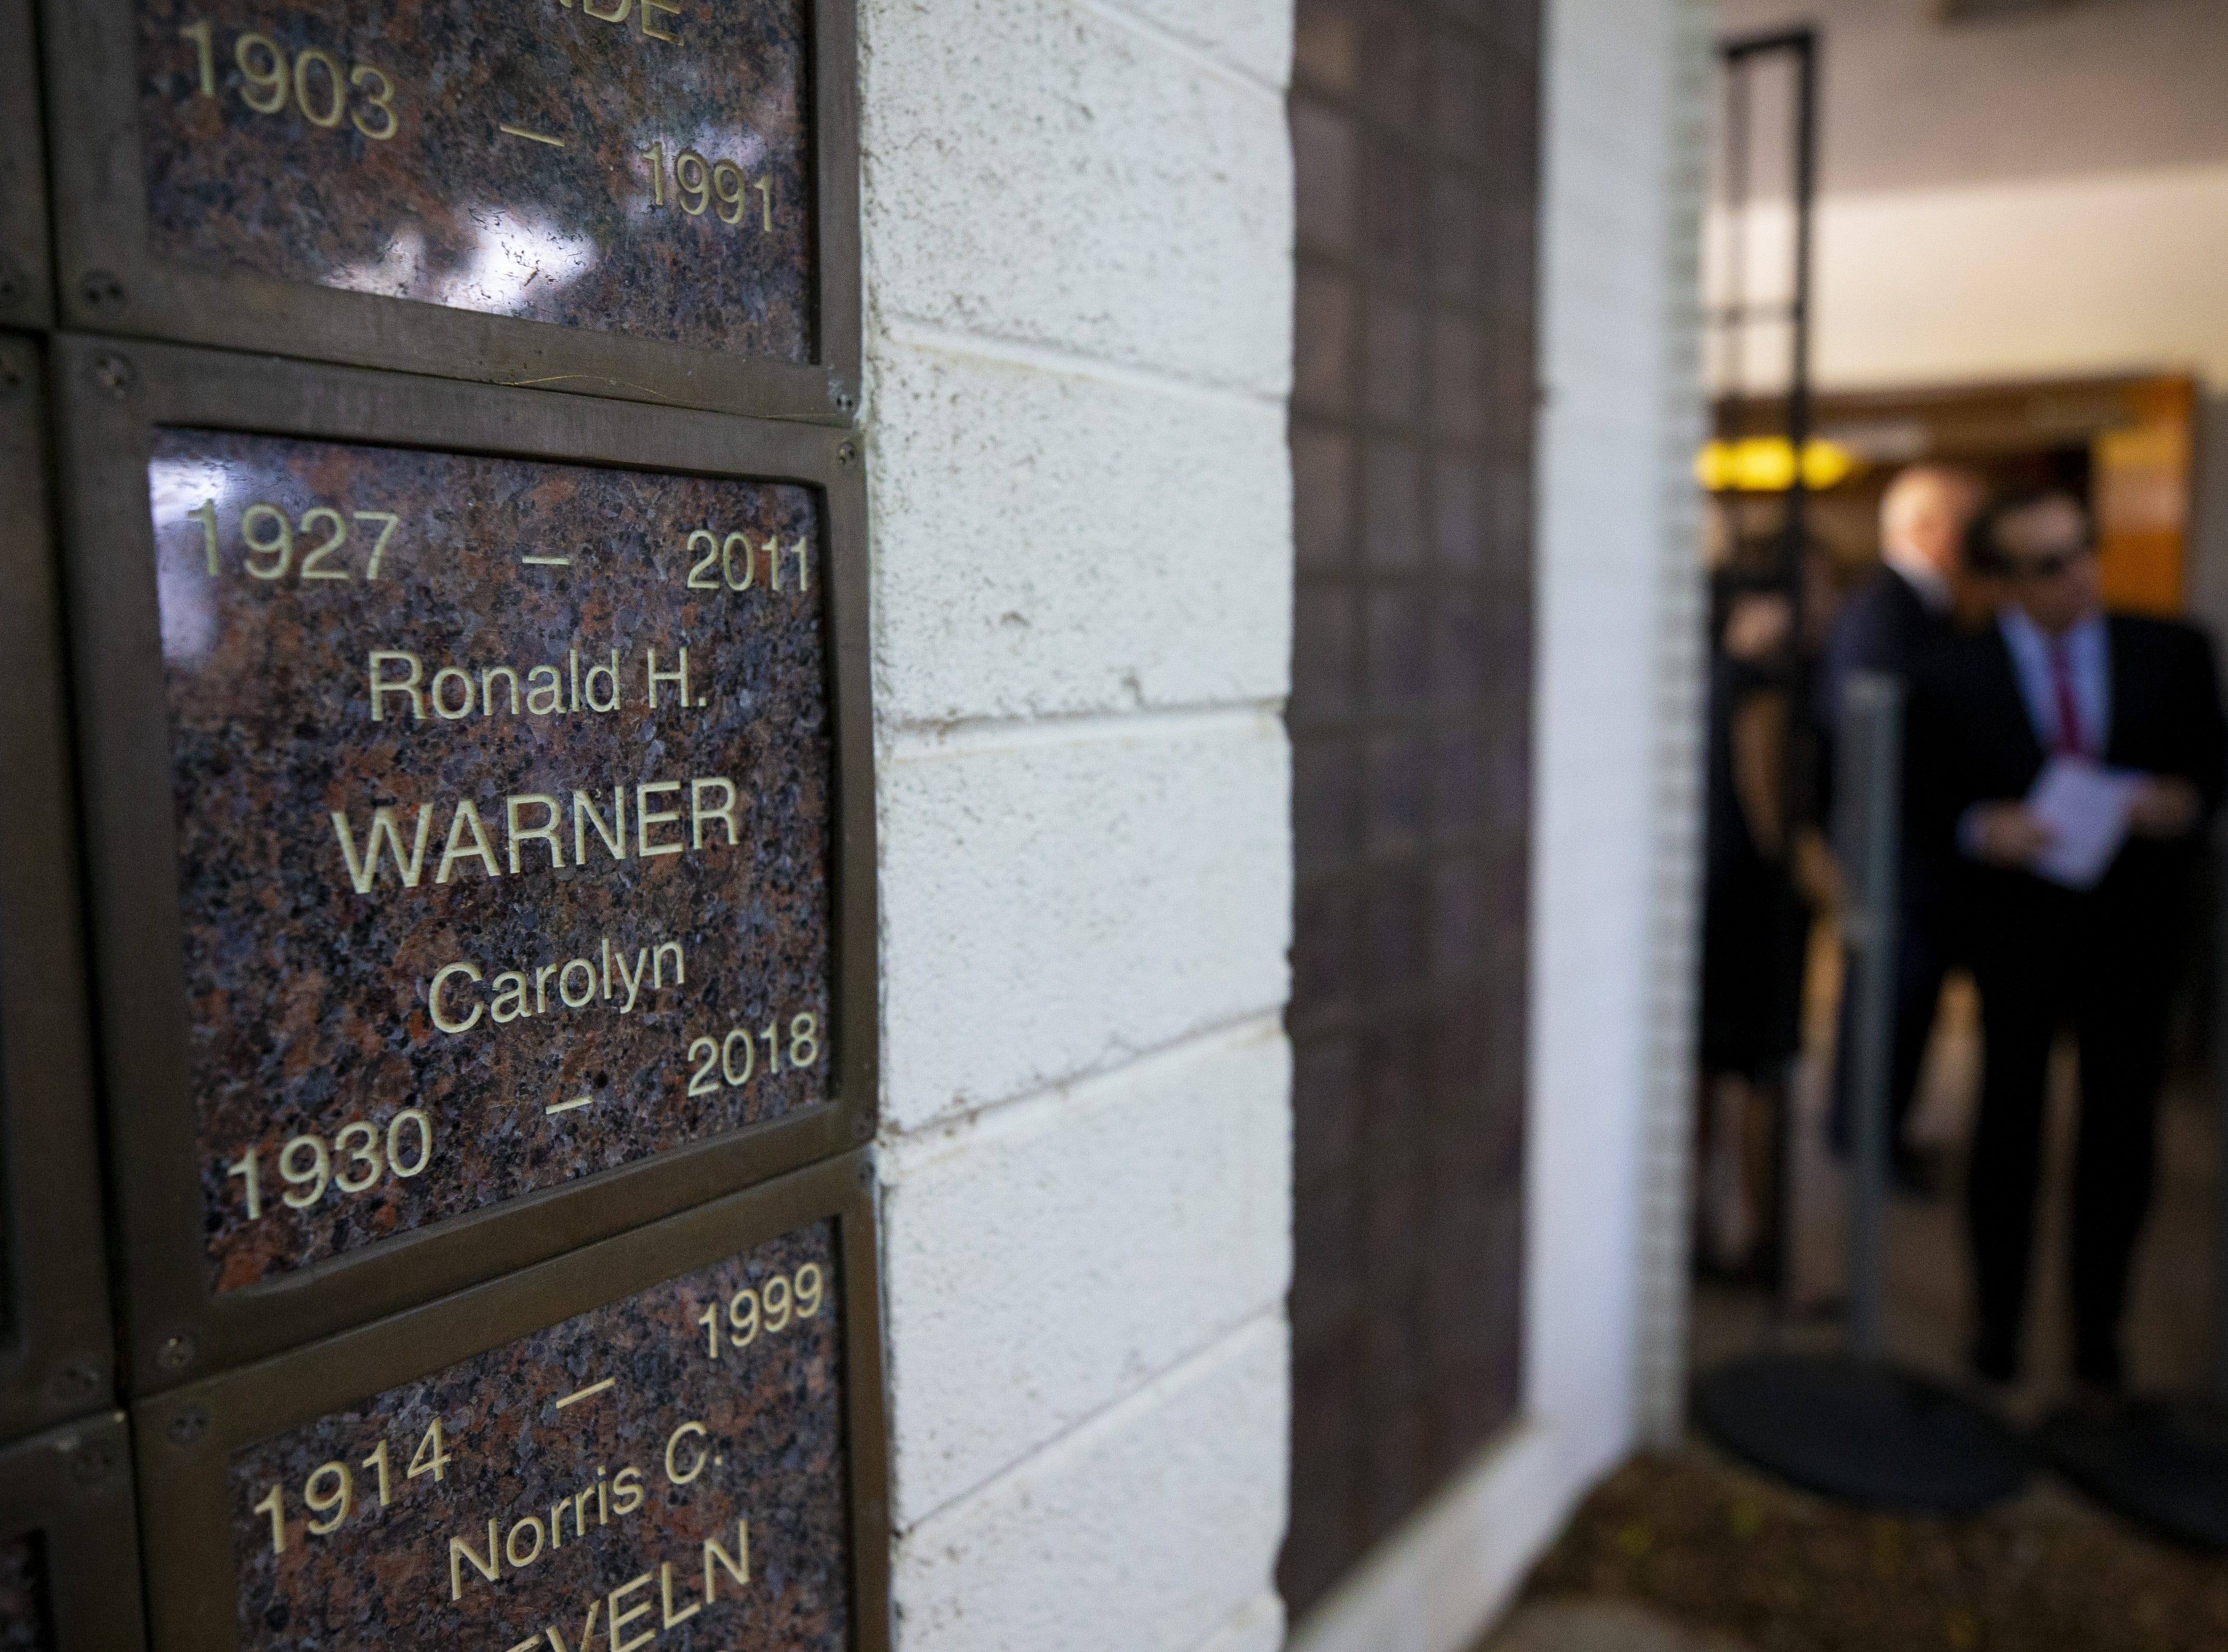 Carolyn Warner is entombed at First United Methodist Church. Warner was the 15th Superintendent of Public Education for the state of Arizona and nearly became the state's first female governor in 1986.